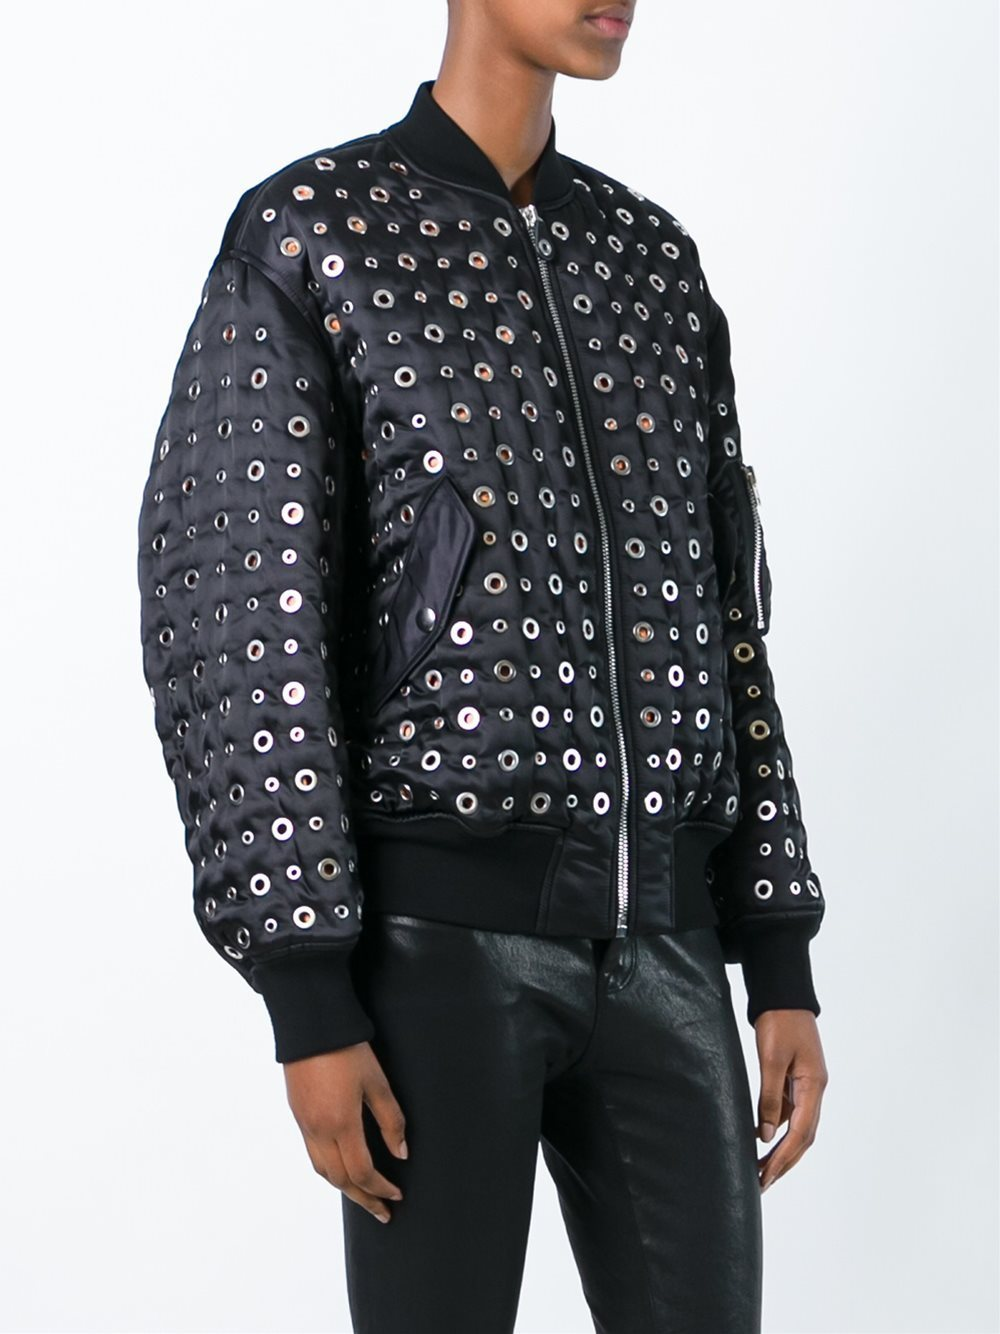 16-17AW AW021 LOOK19 GROMMET EMBELLISHED BOMBER JACKET